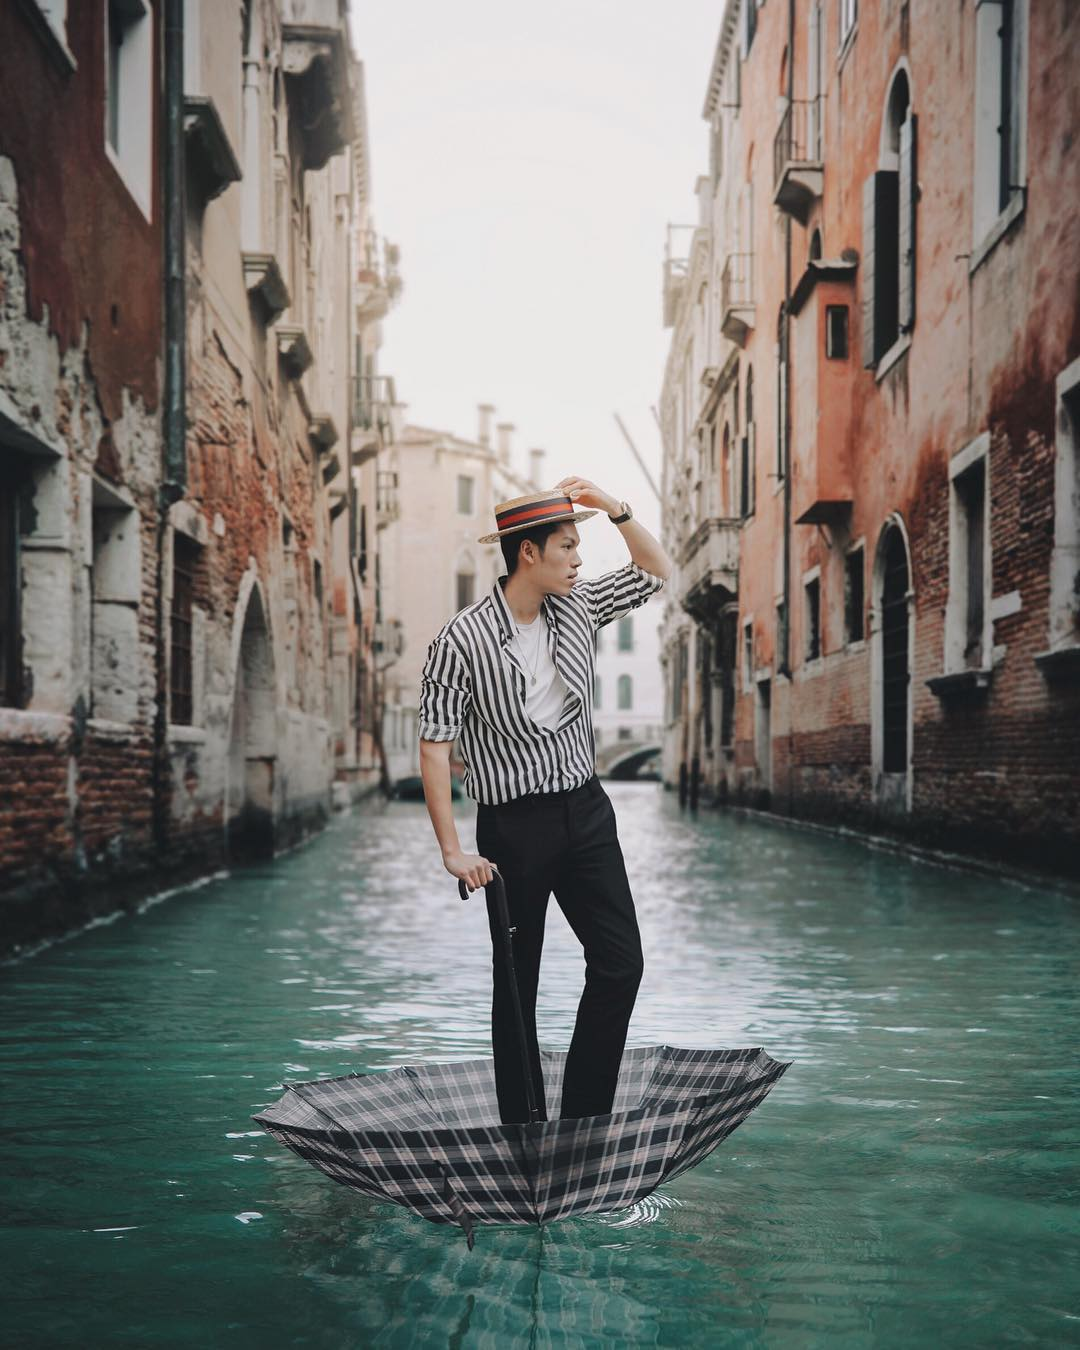 Few Cool Outfit Ideas For Guys